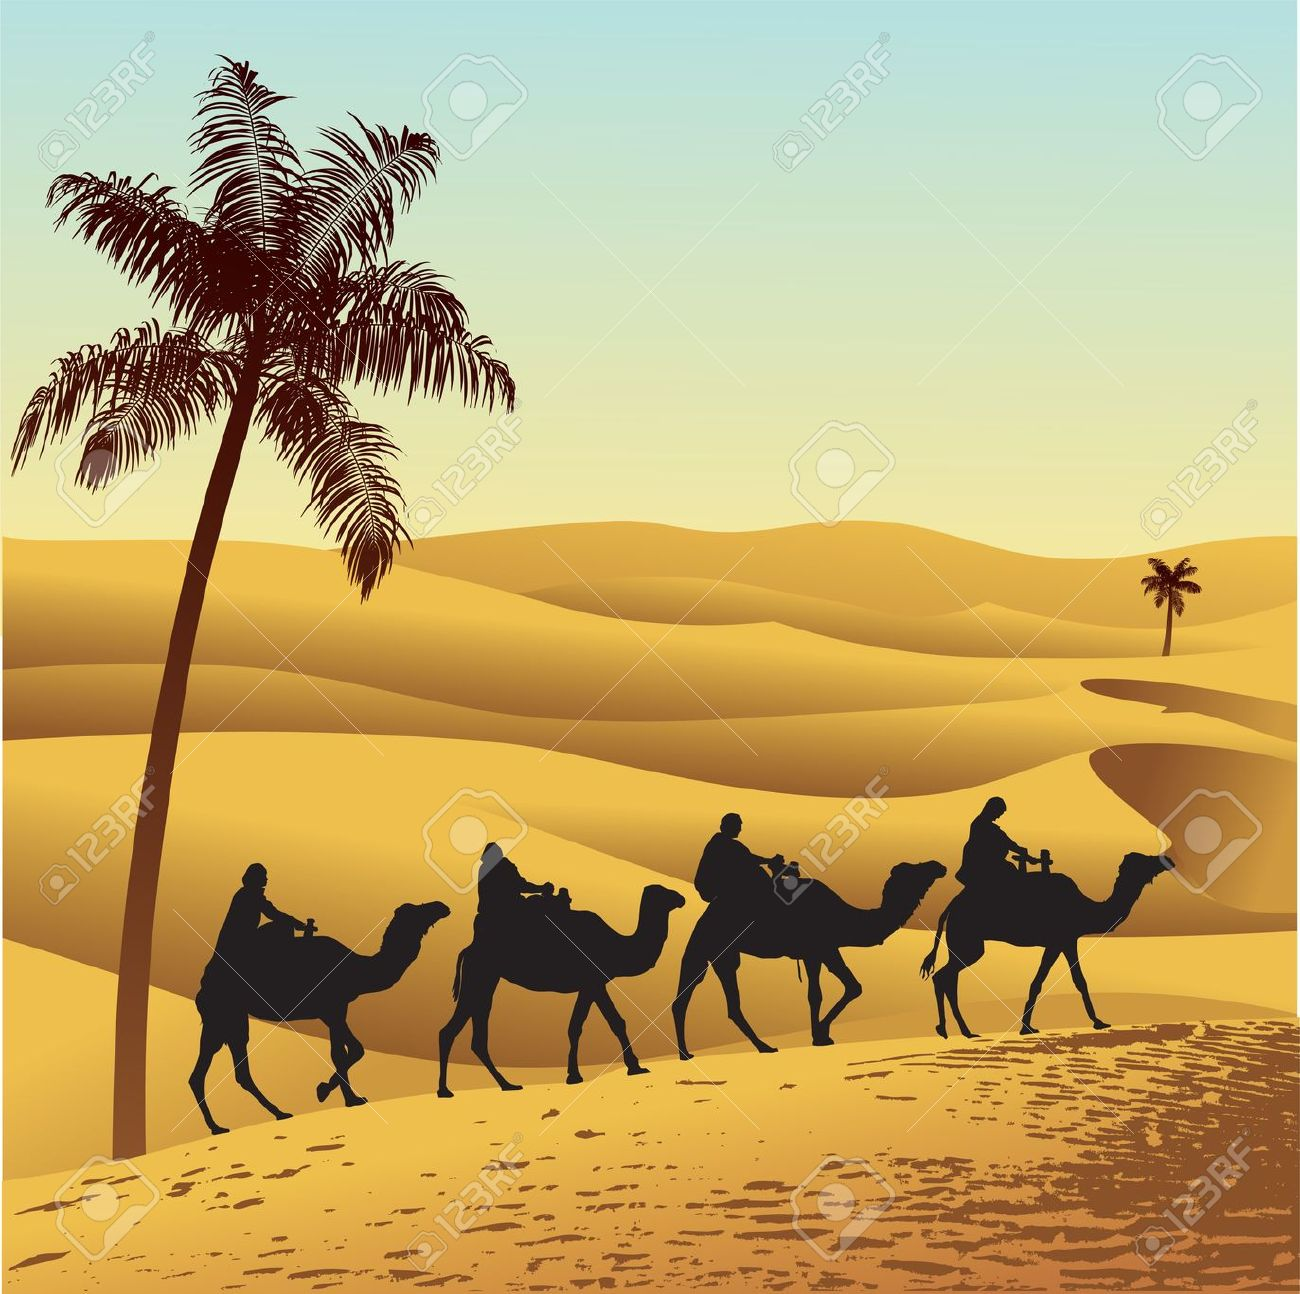 Sahara Desert Clipart Black And White.